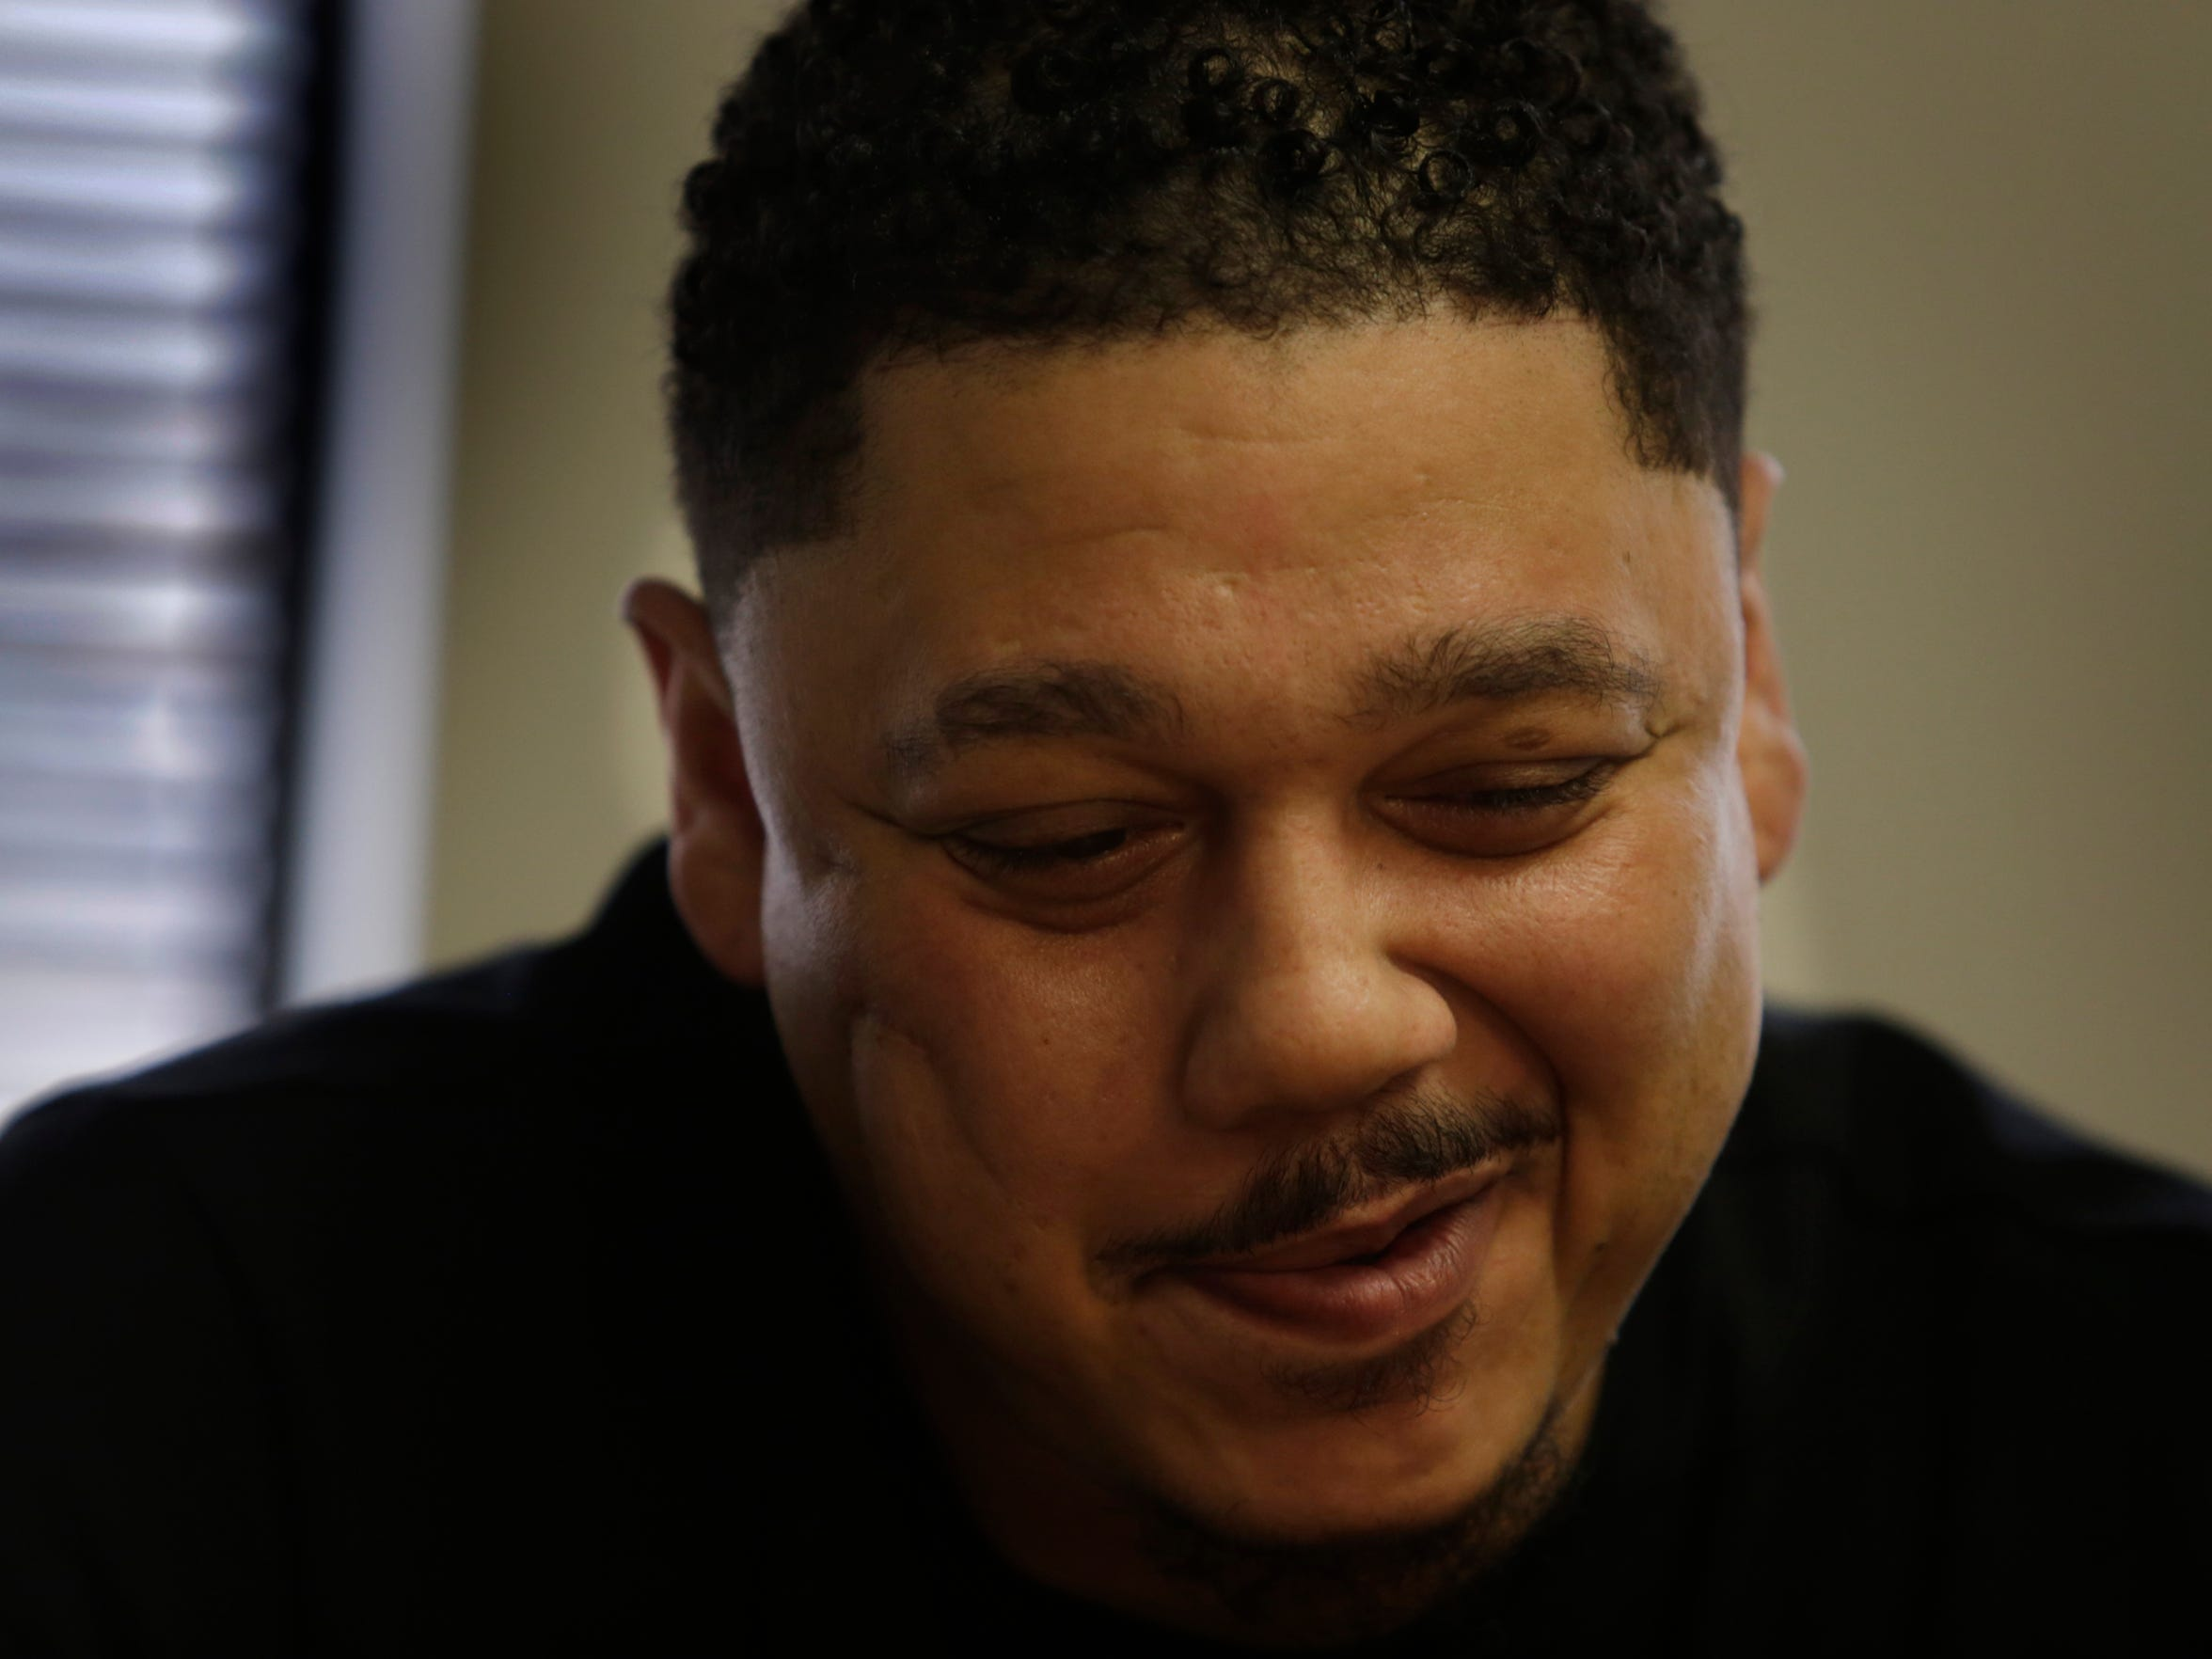 Detroit's Lamar McGaughy, 38, smiles as he speaks about his two children during a meeting at the Detroit Center for Family Advocacy in January.